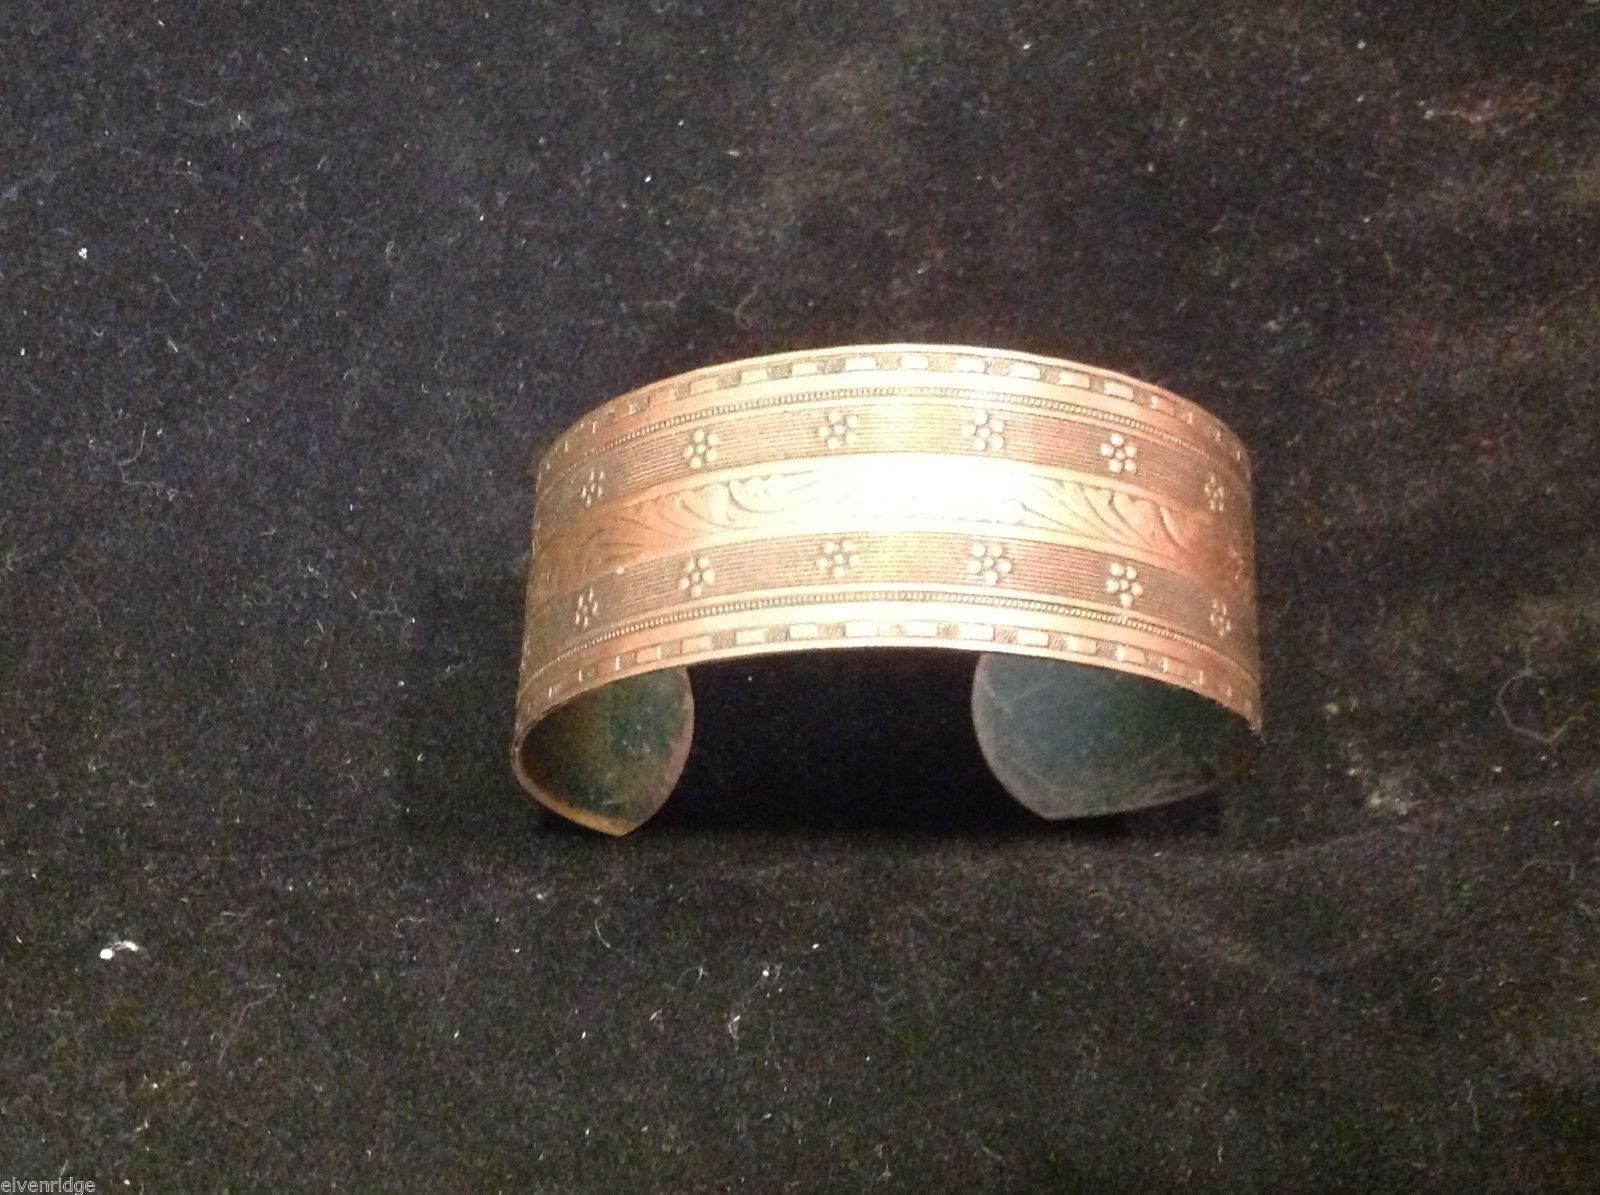 Vintage copper cuff bracelet with engraving